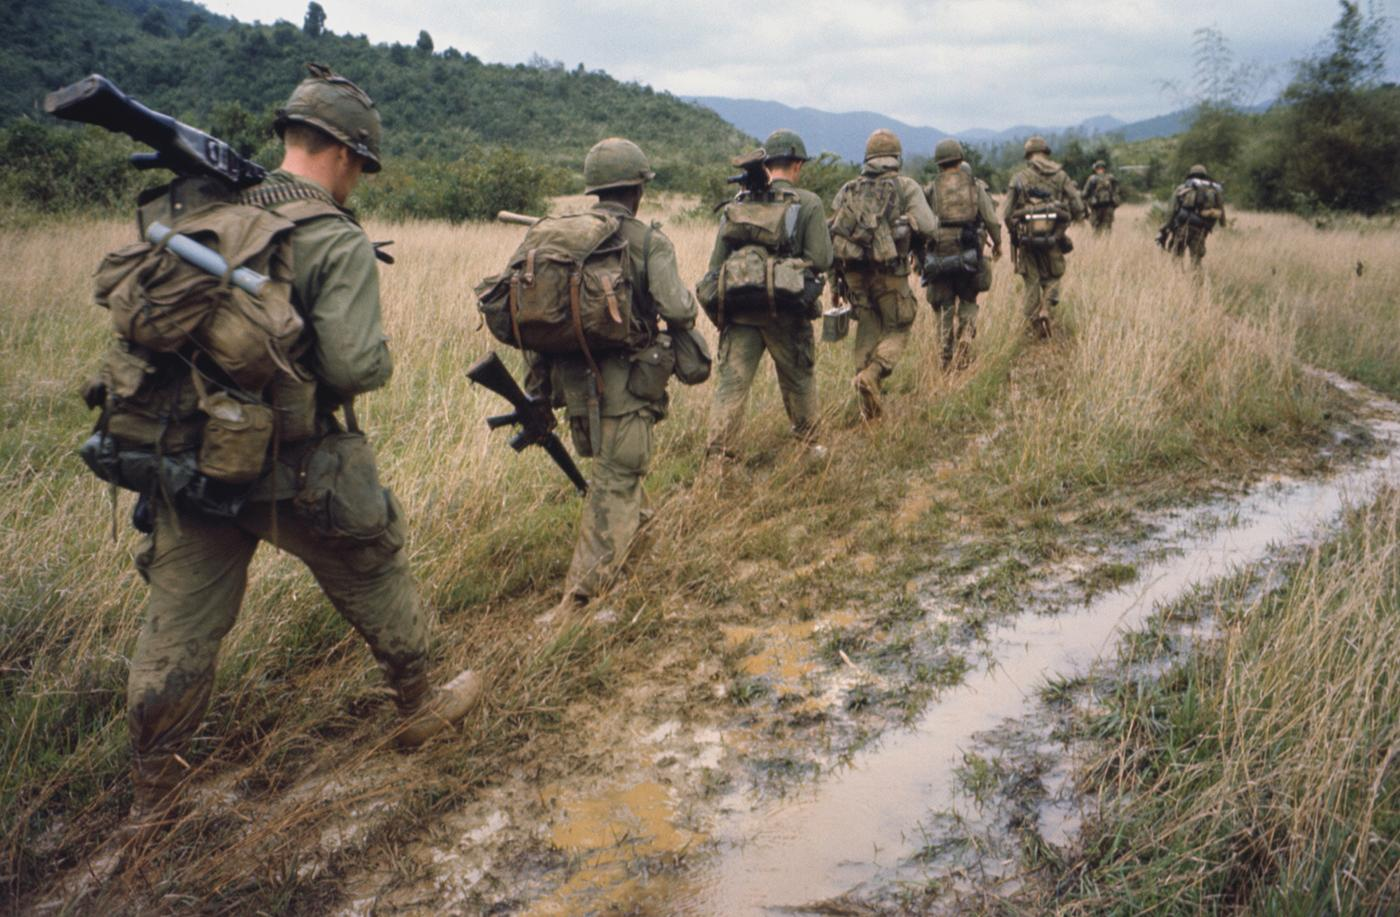 Soldiers on a search and destroy operation near Qui Nhon. January 17, 1967. Photo: Bettmann/Getty Images